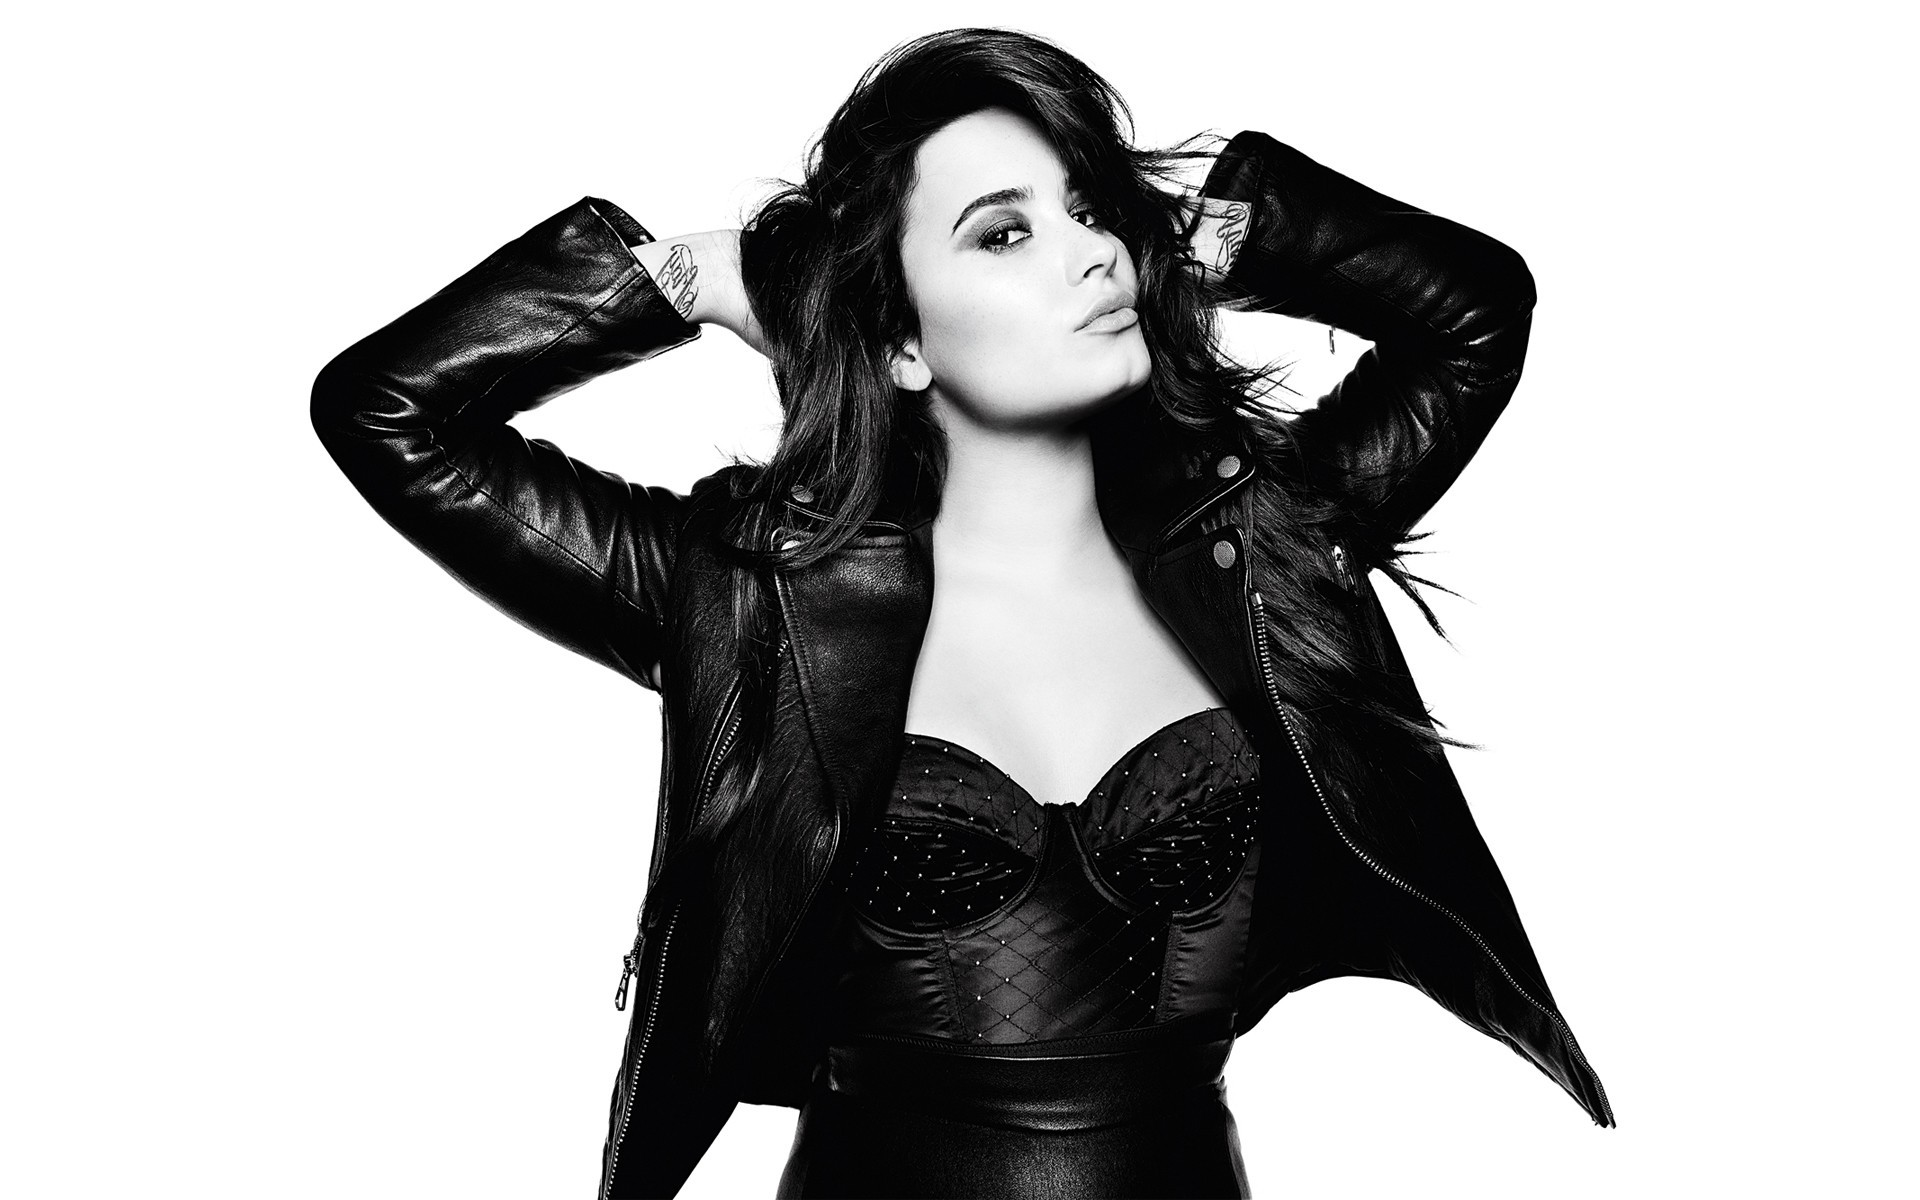 demi lovato desktop background - wallpaper, high definition, high